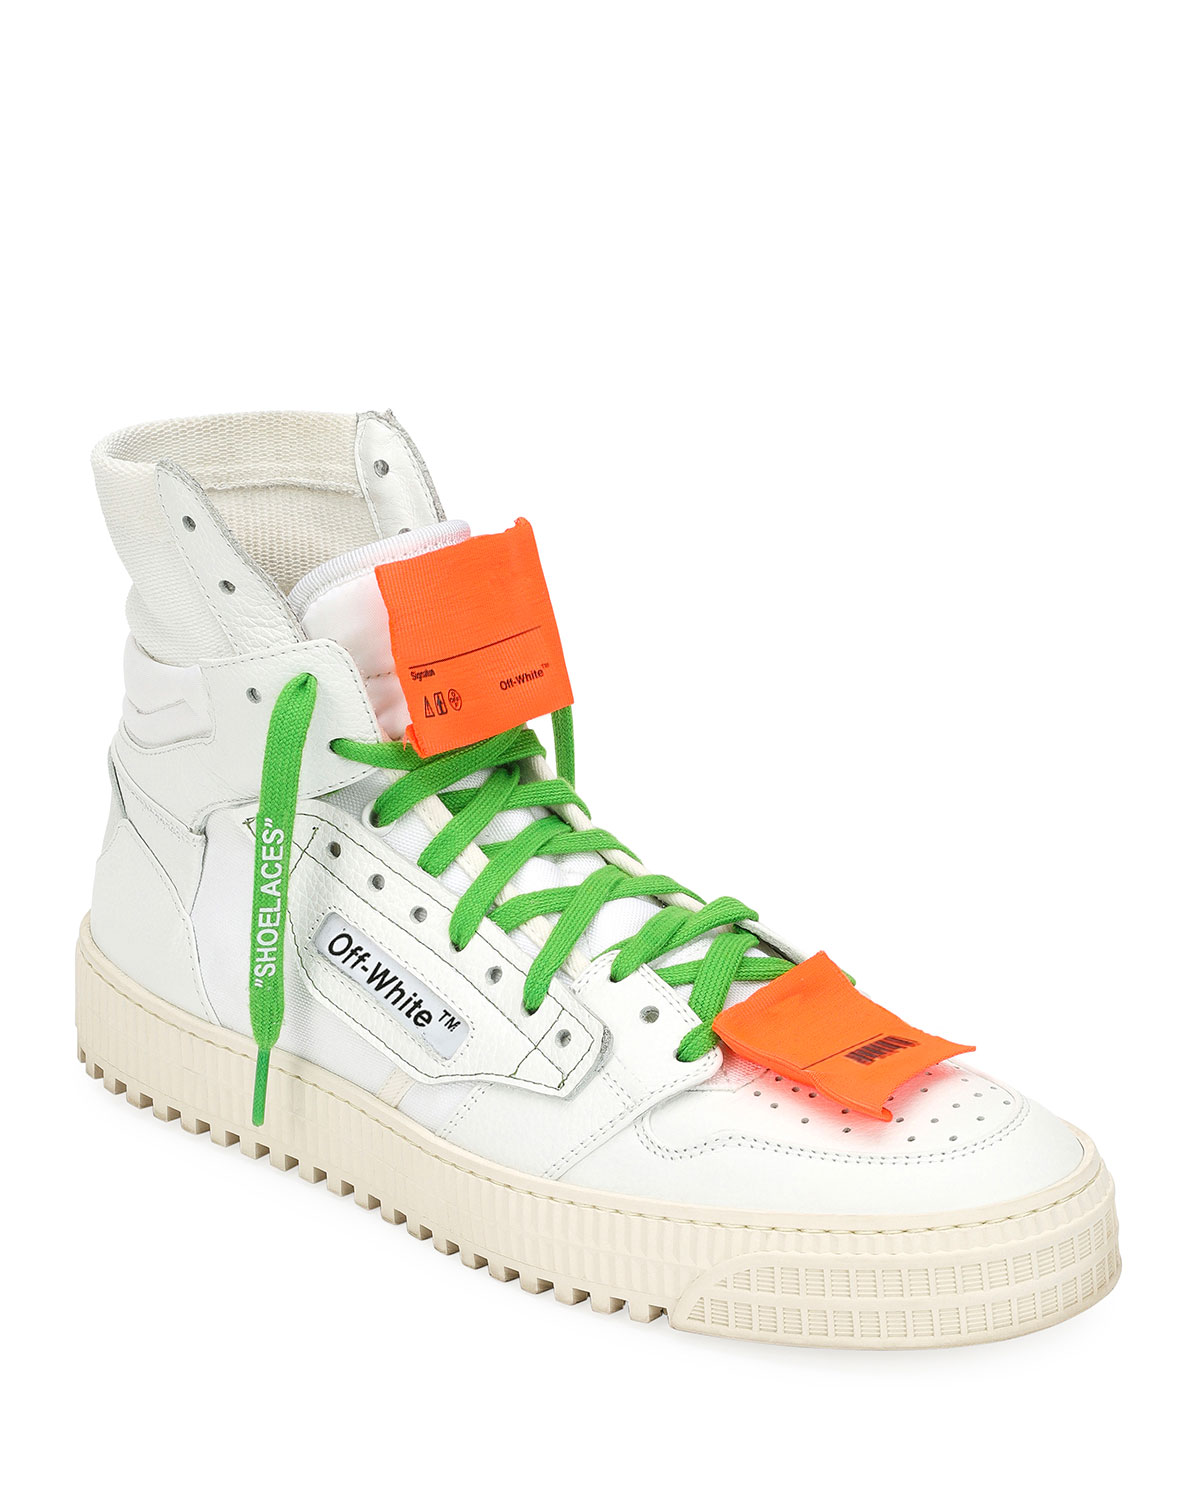 Low 3.0 Leather High-Top Sneakers